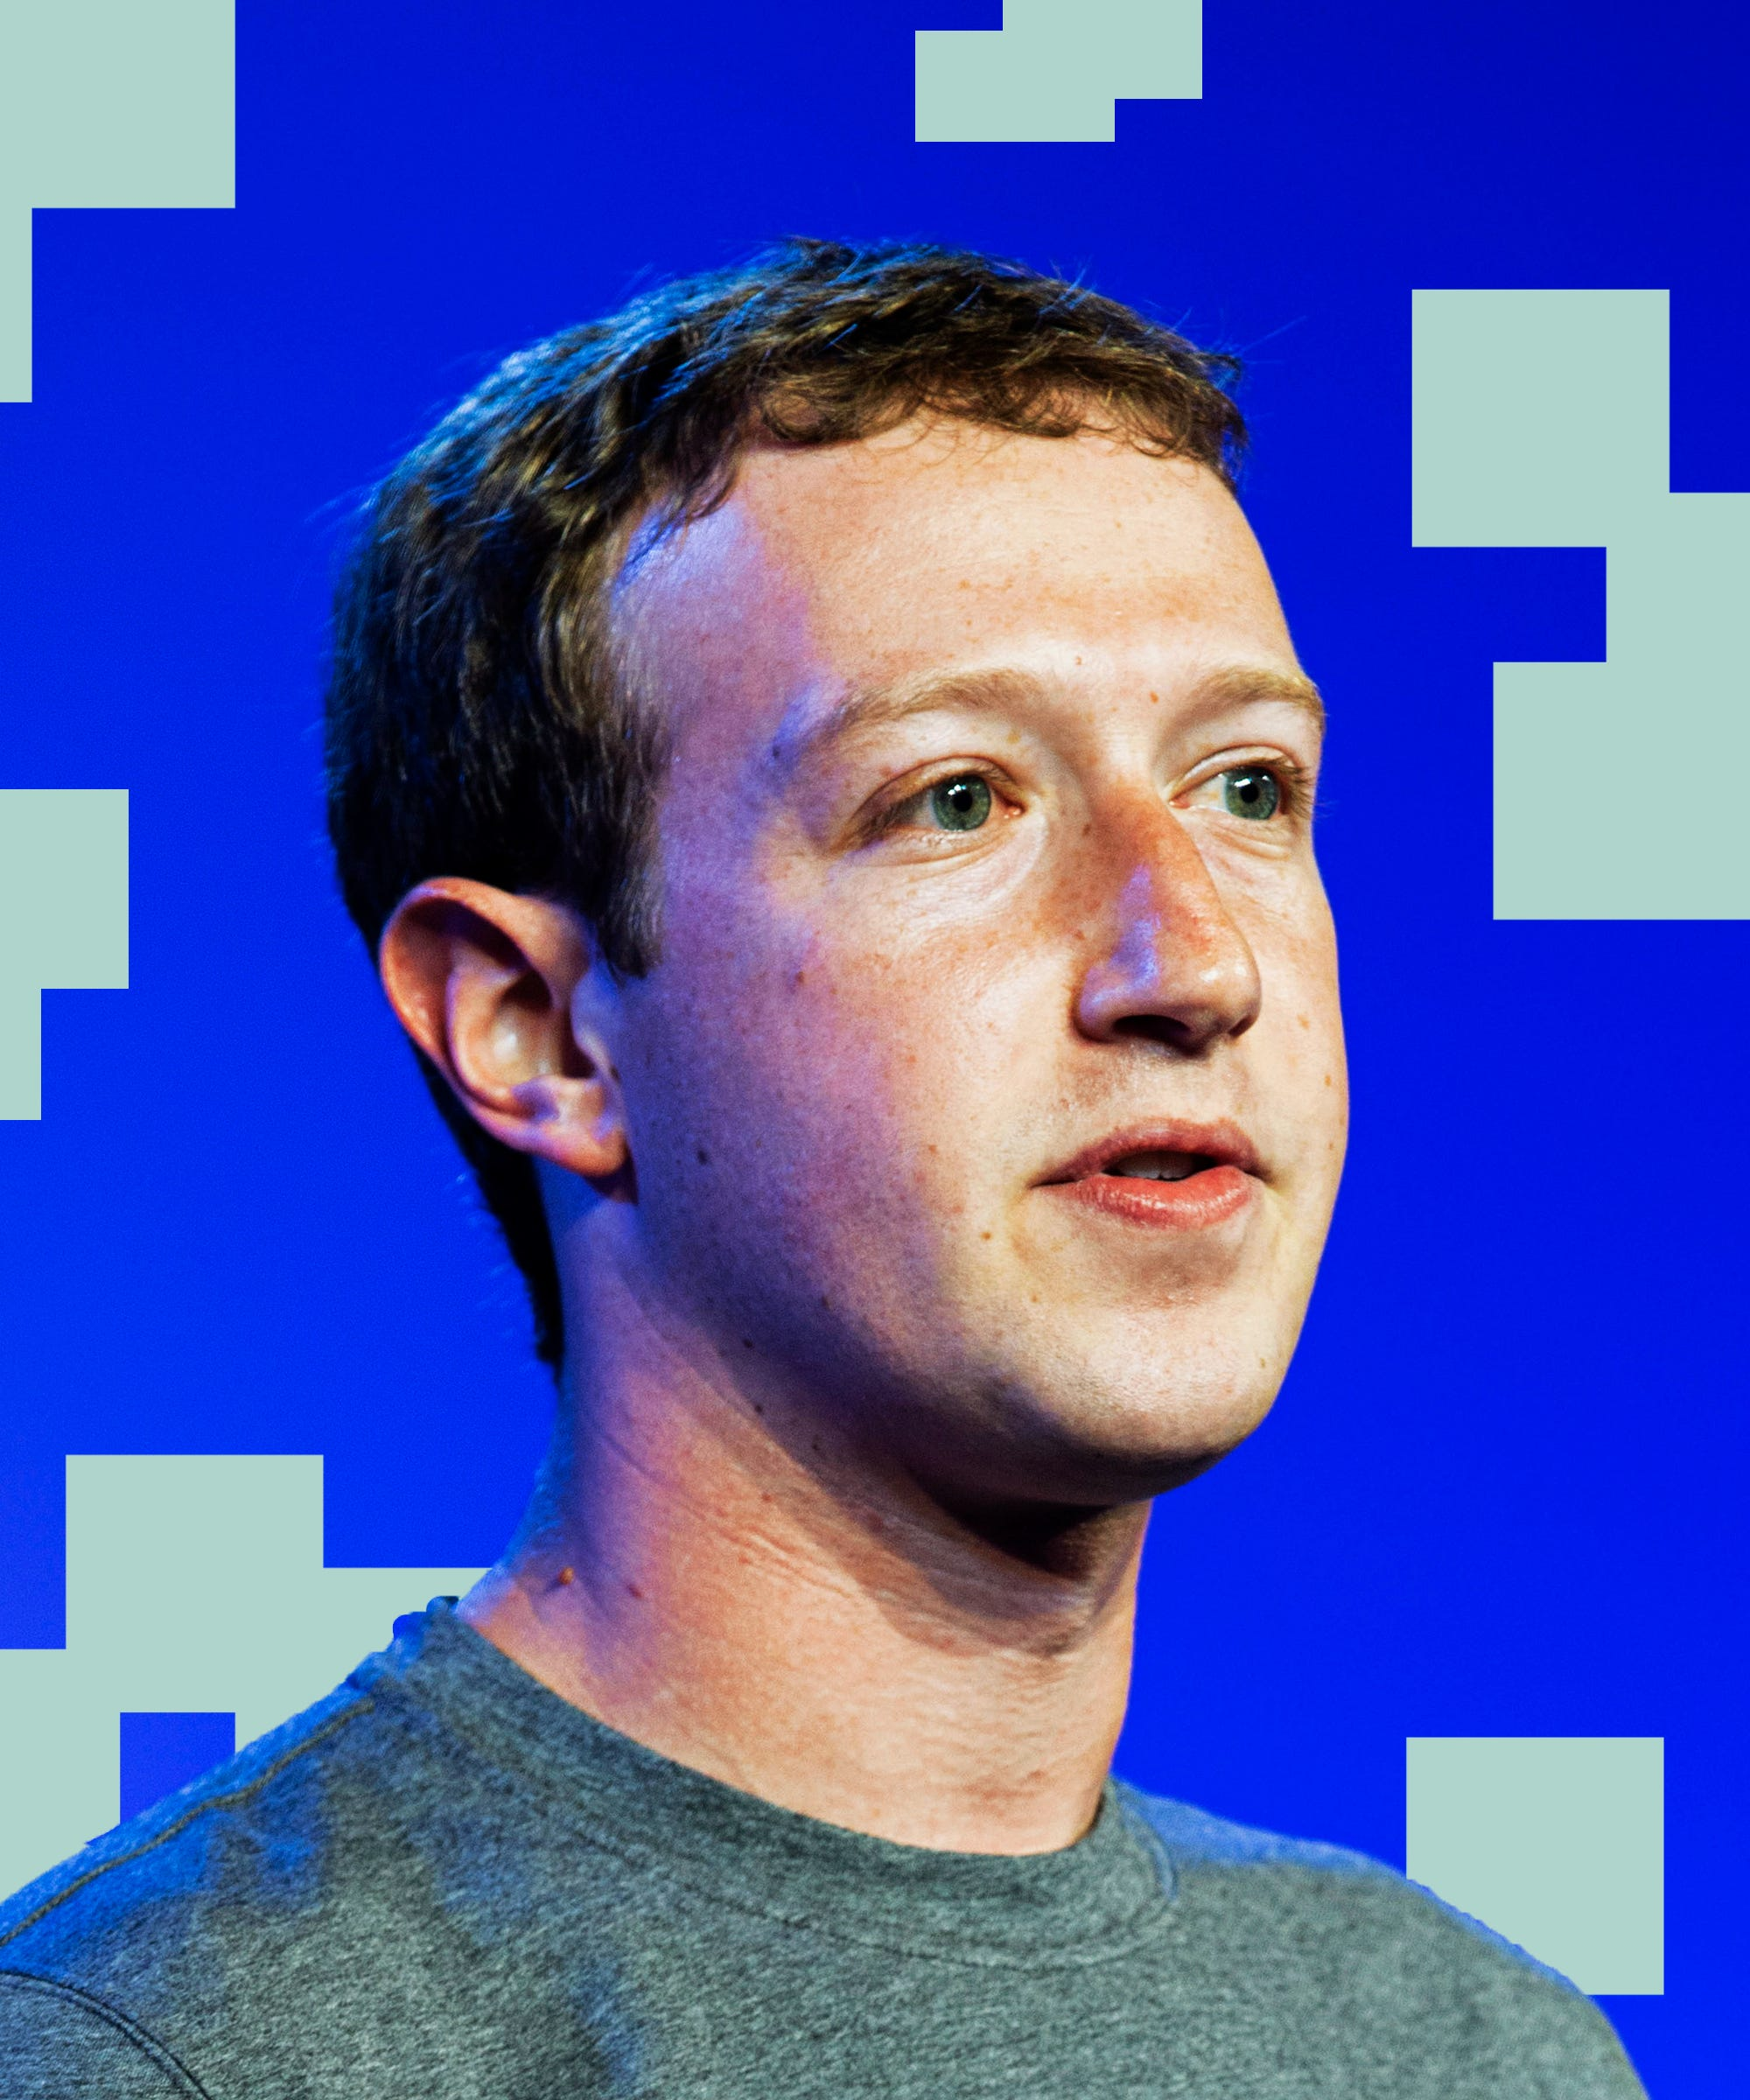 Russia-Linked Content Reached 126 Million People Through Facebook